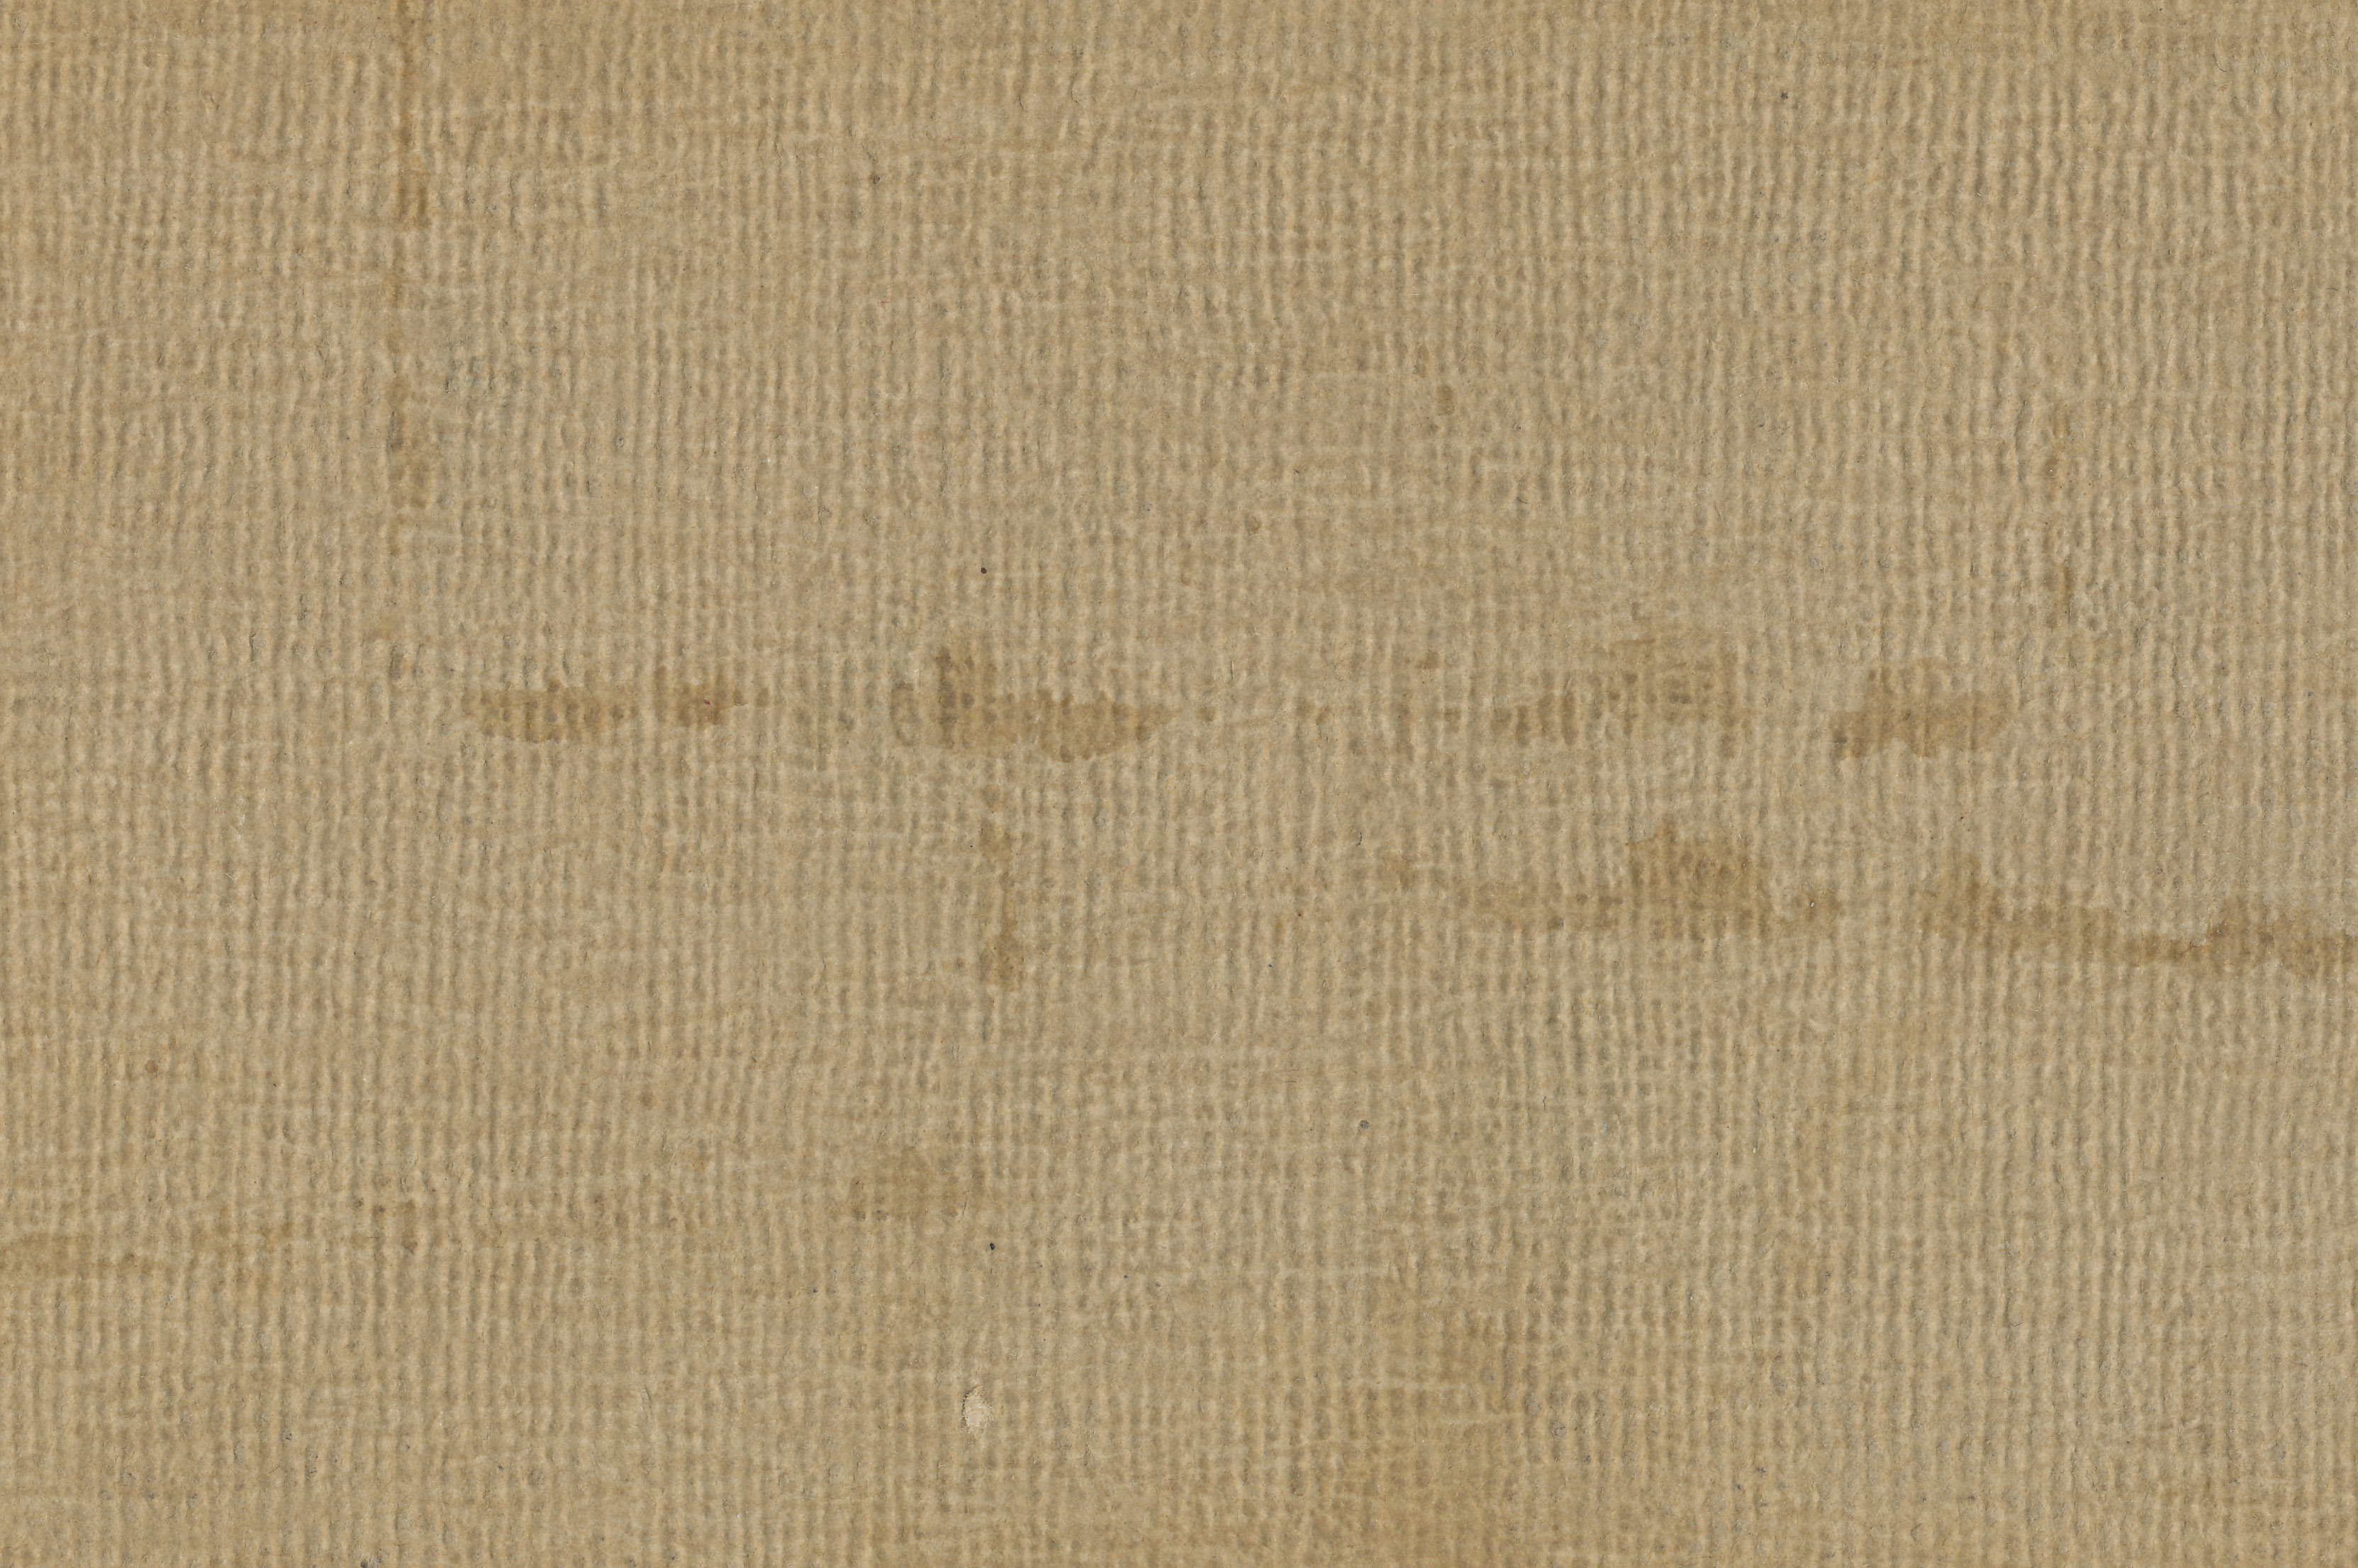 Paper texture, with brownish spots | Textures for photoshop free